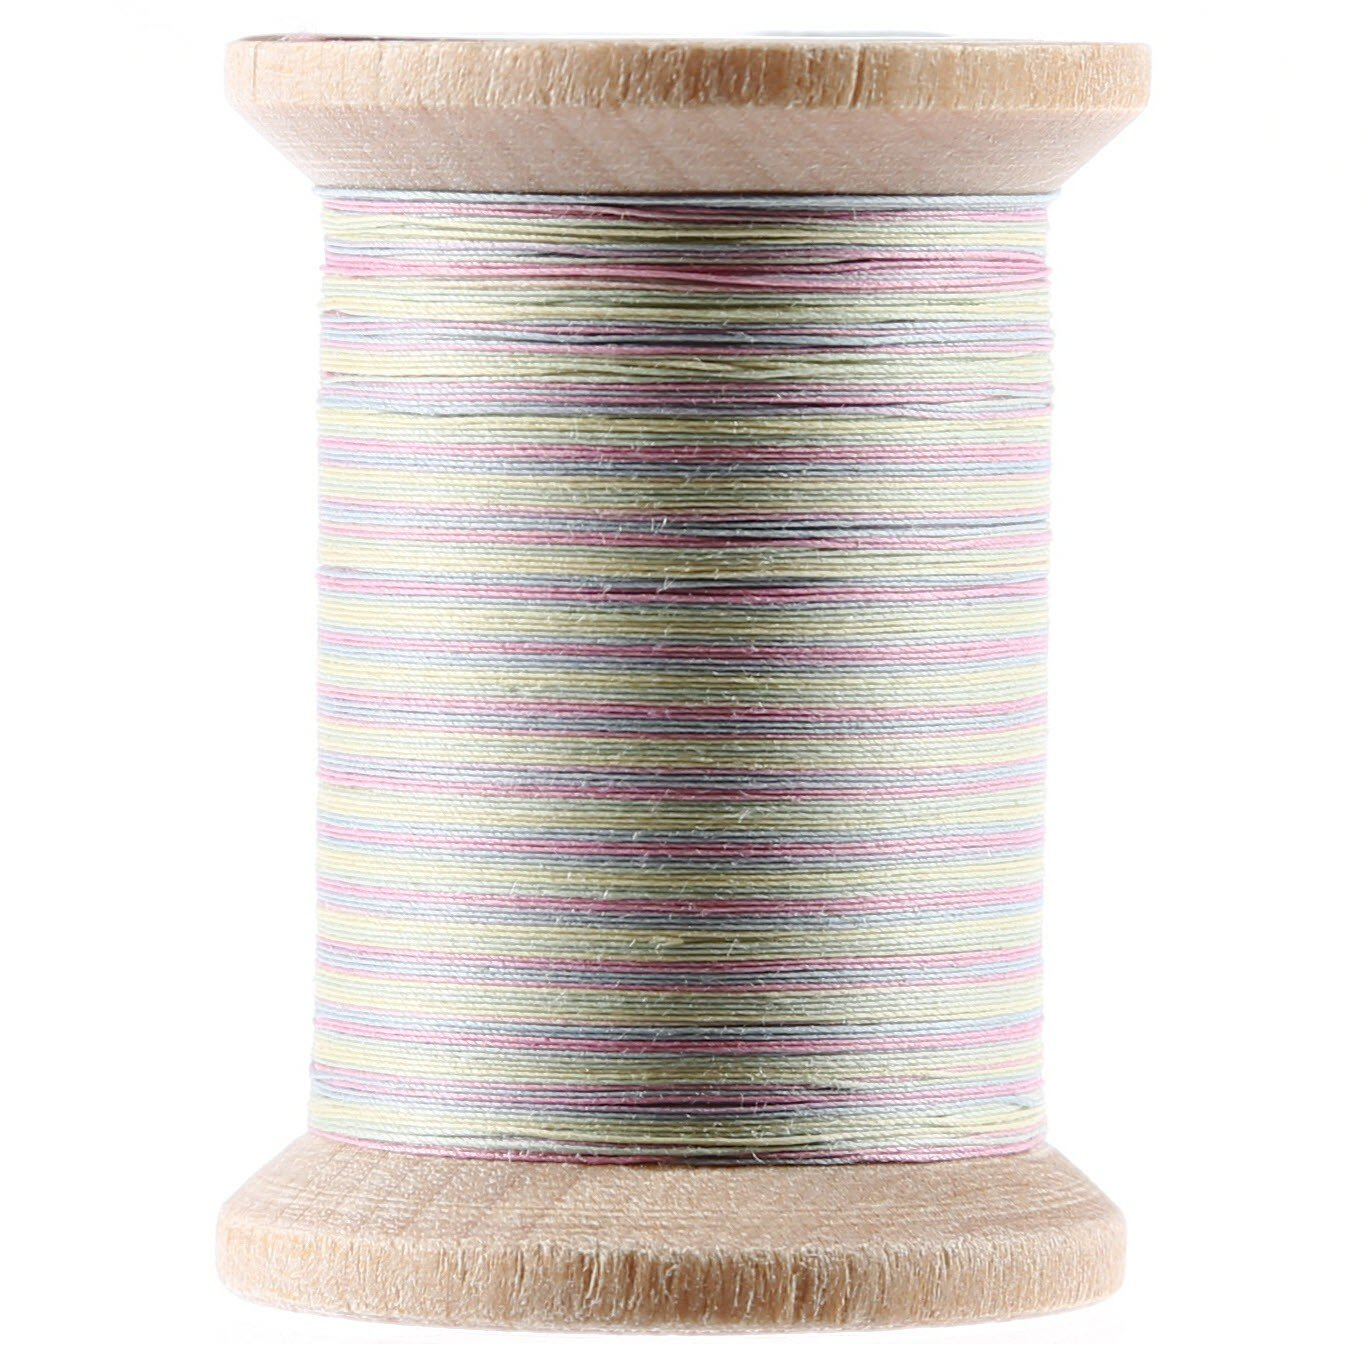 Variegated Cotton Hand Quilting Thread 400yds Pastels